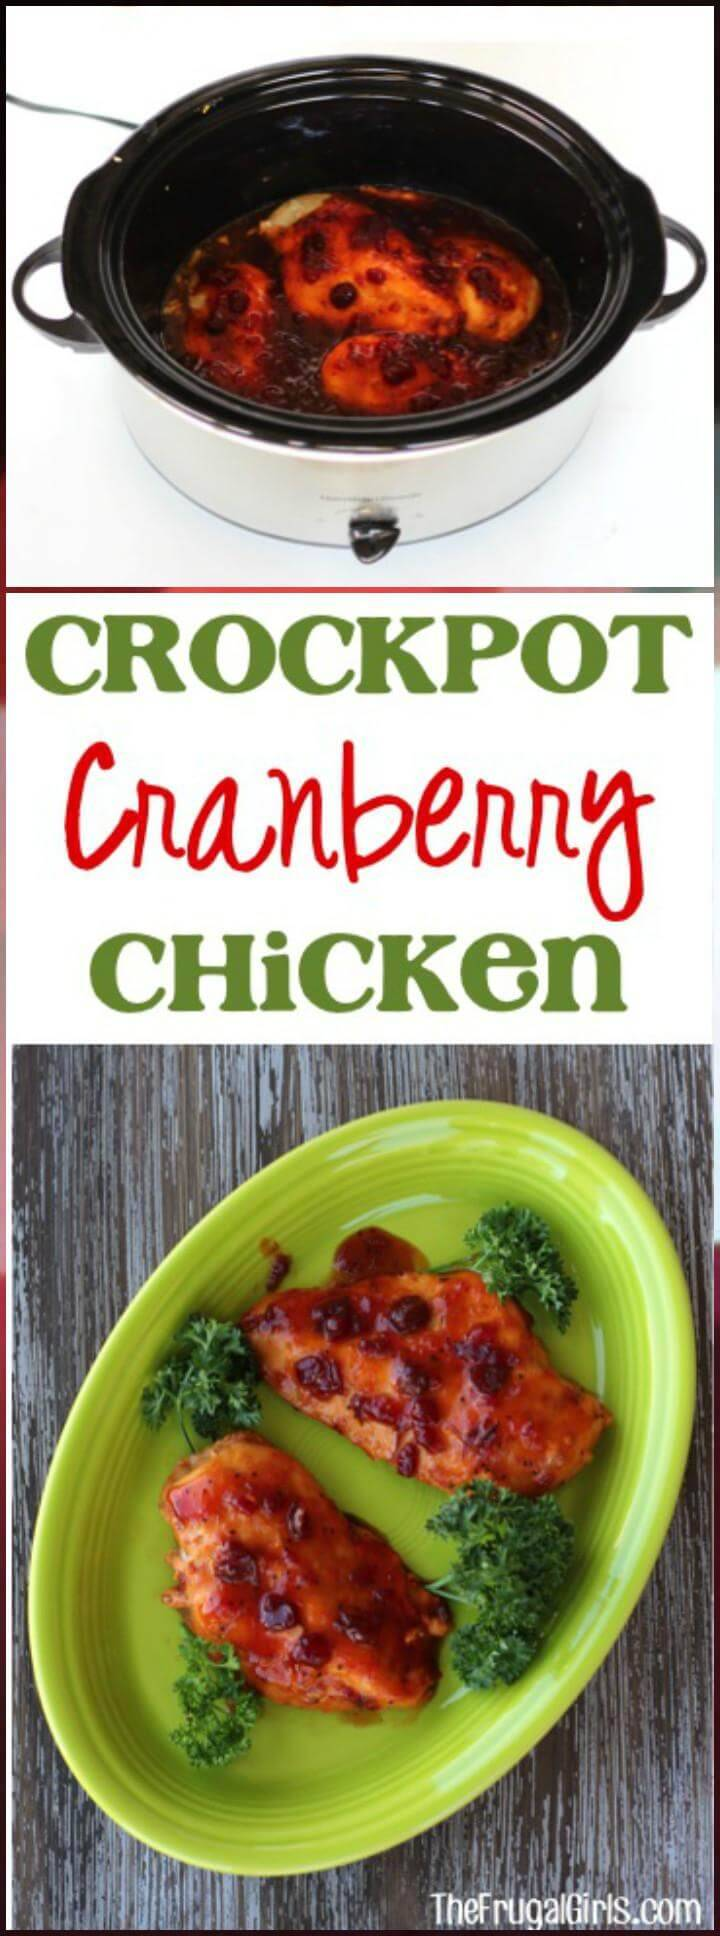 quick-to-cook crockpot cranberry chicken recipe